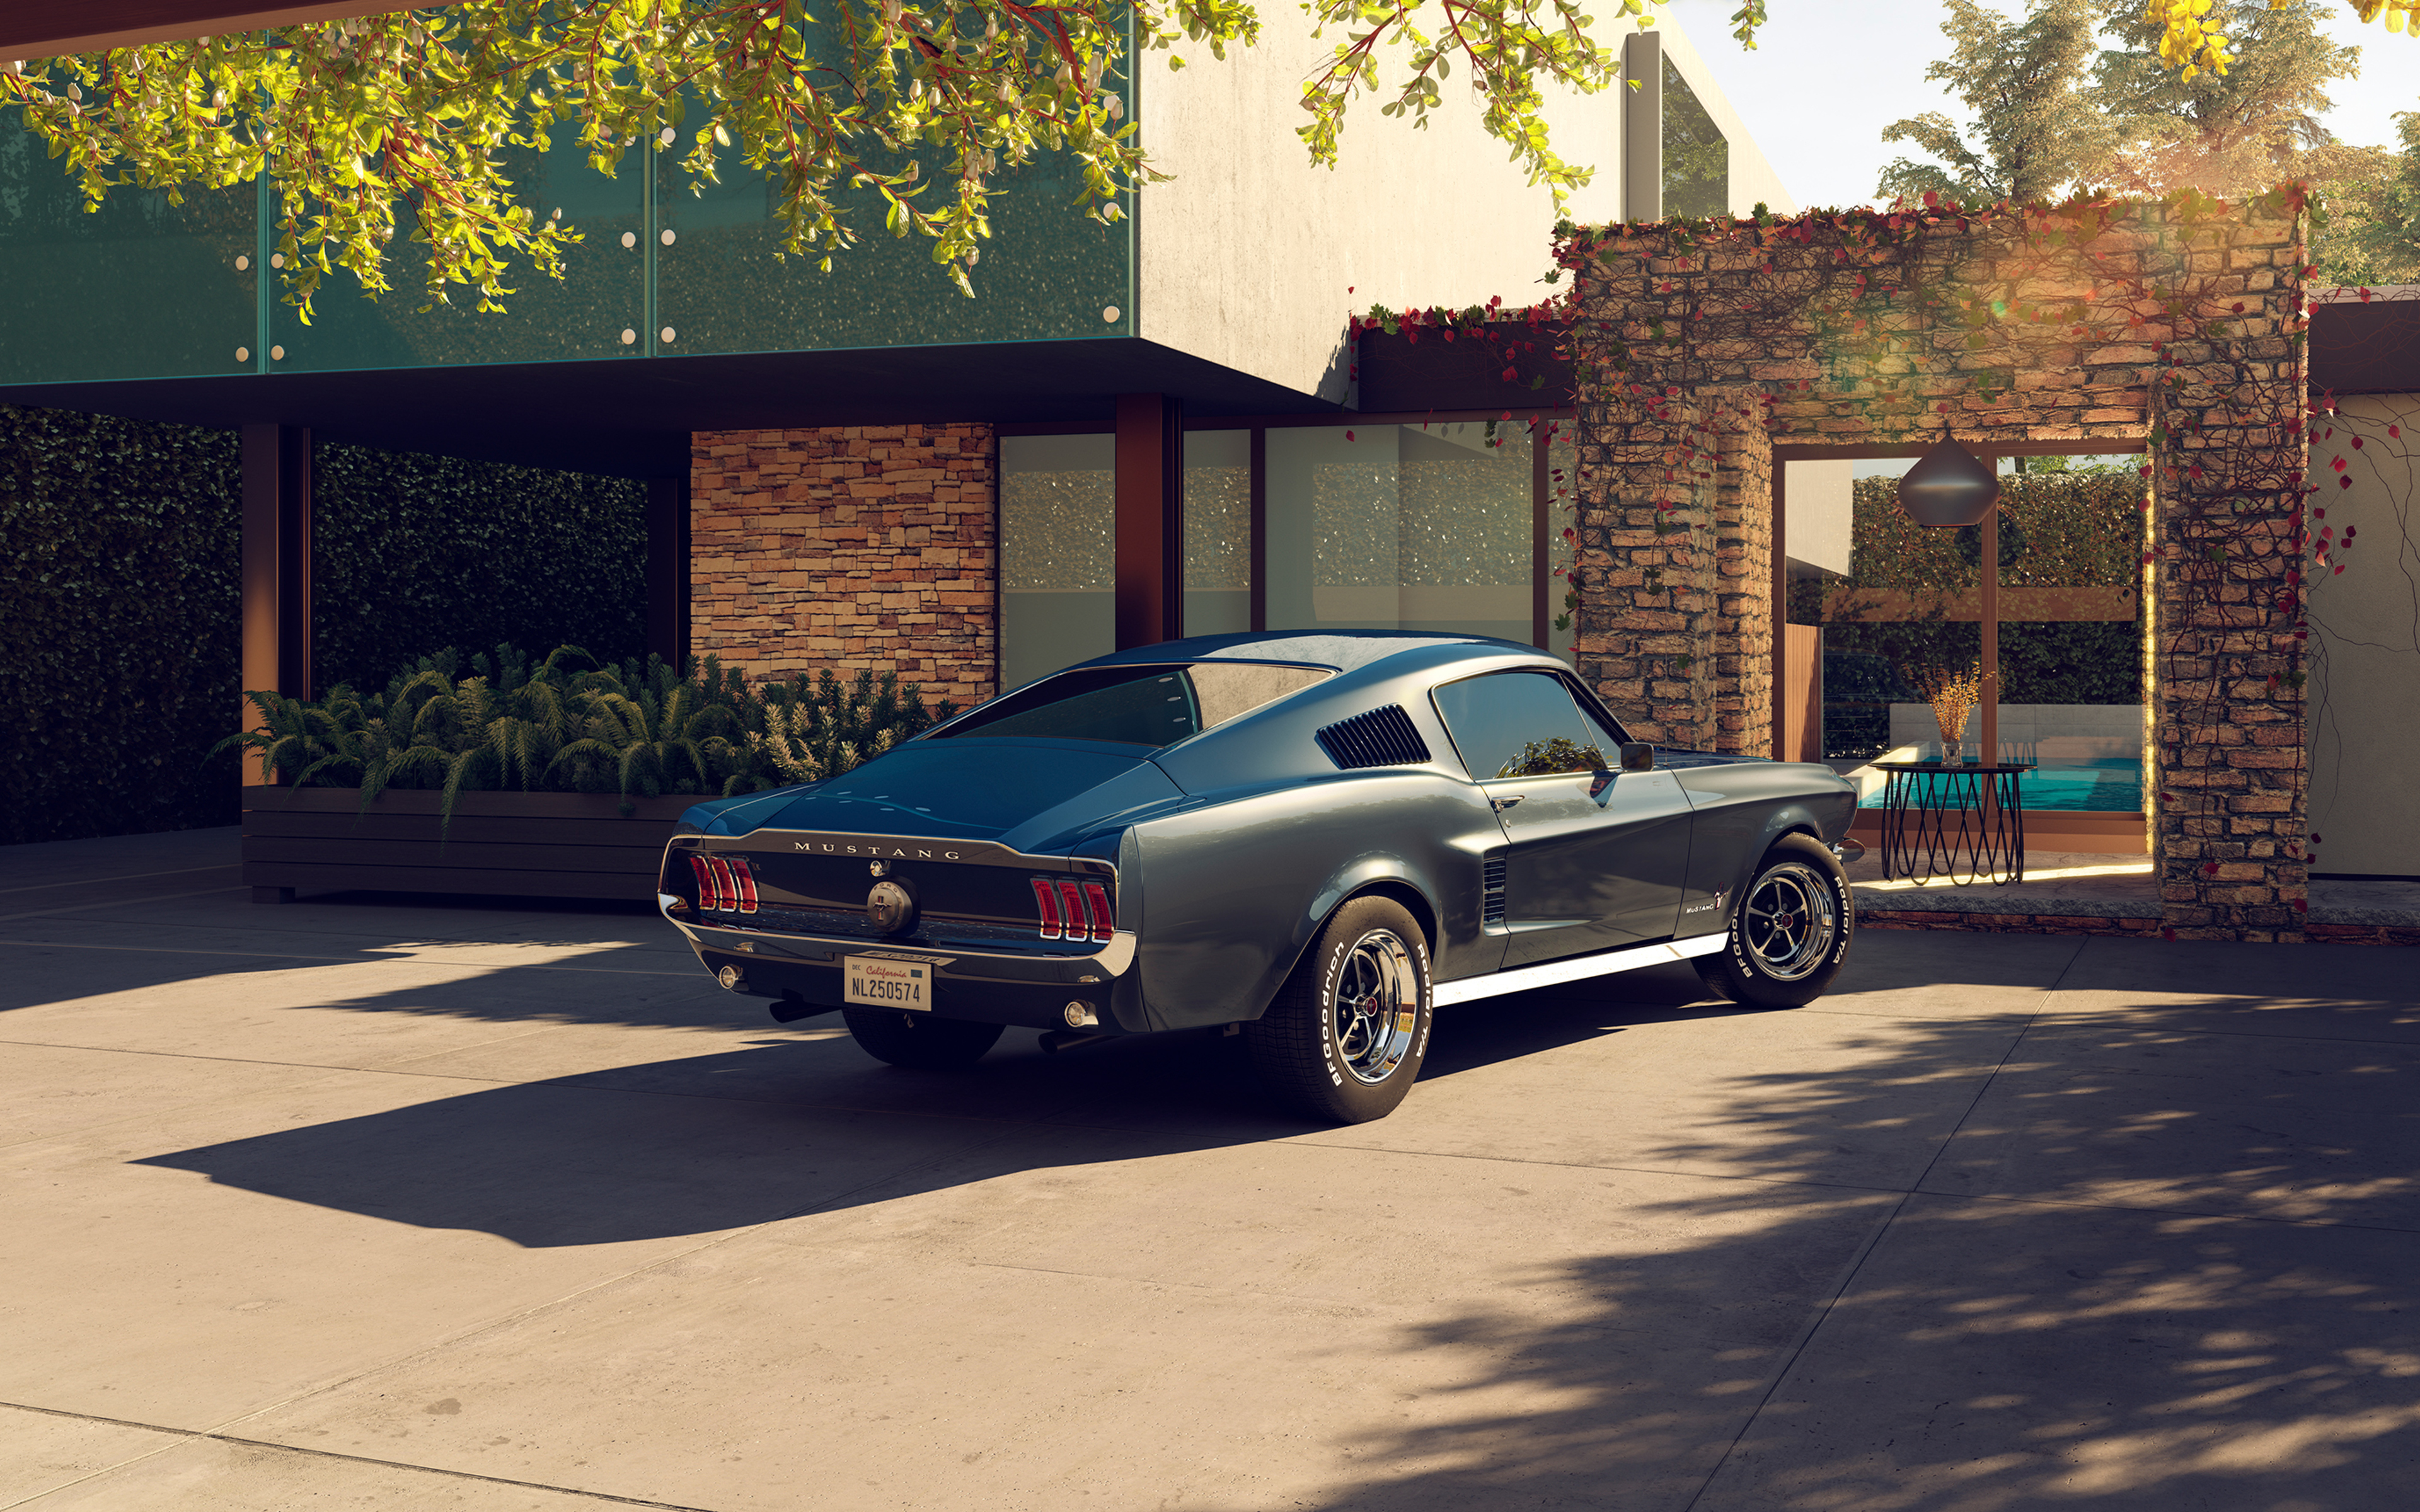 Ford Mustang 1967 Wallpaper Iphone